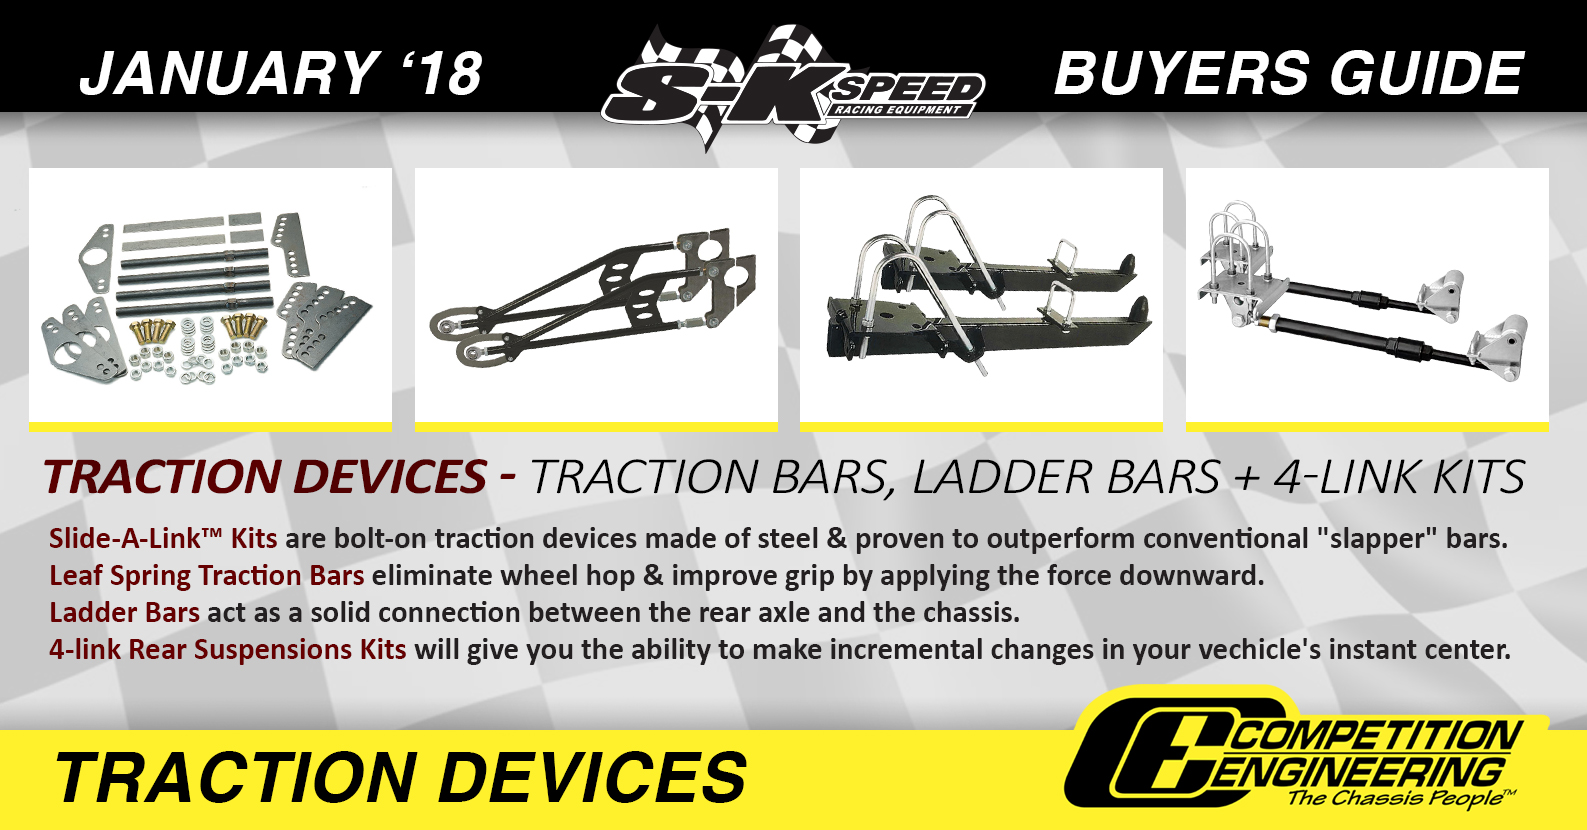 Competition Engineering Traction Devices - January 17 Buyers Guide